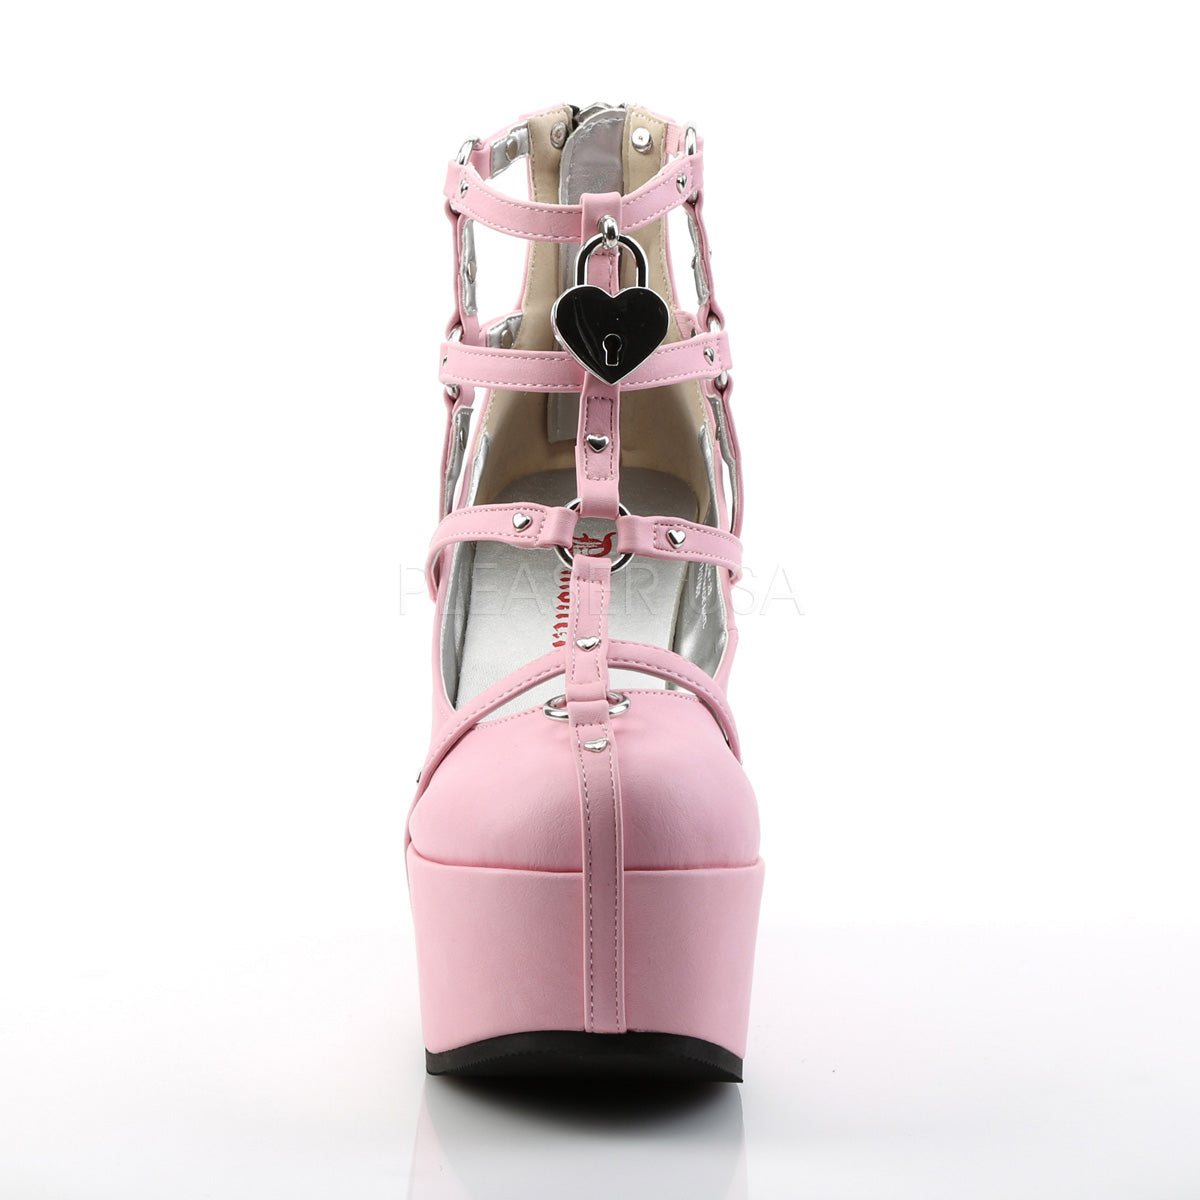 Pink Vegan Leather Cage Bootie Rave Shoes with Heart-Locket Detail -  rave wear, rave outfits, edc, booty shorts